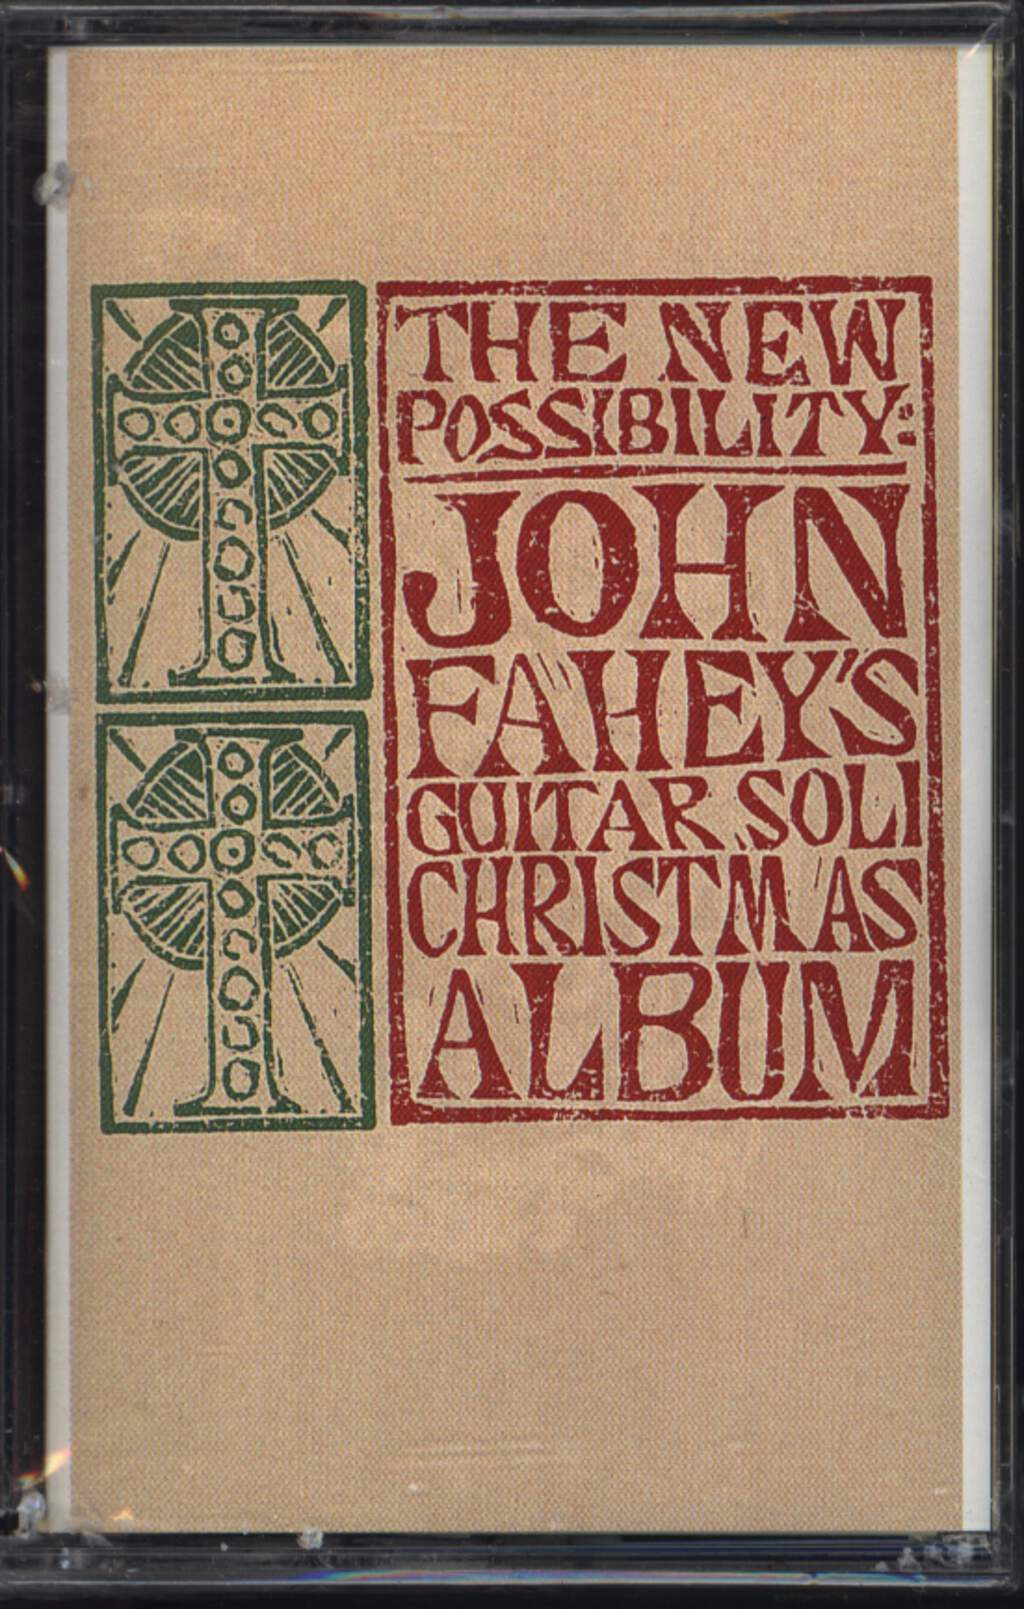 John Fahey: The New Possibility: John Fahey's Guitar Soli Christmas Album/Christmas With John Fahey Vol. II, Compact Cassette